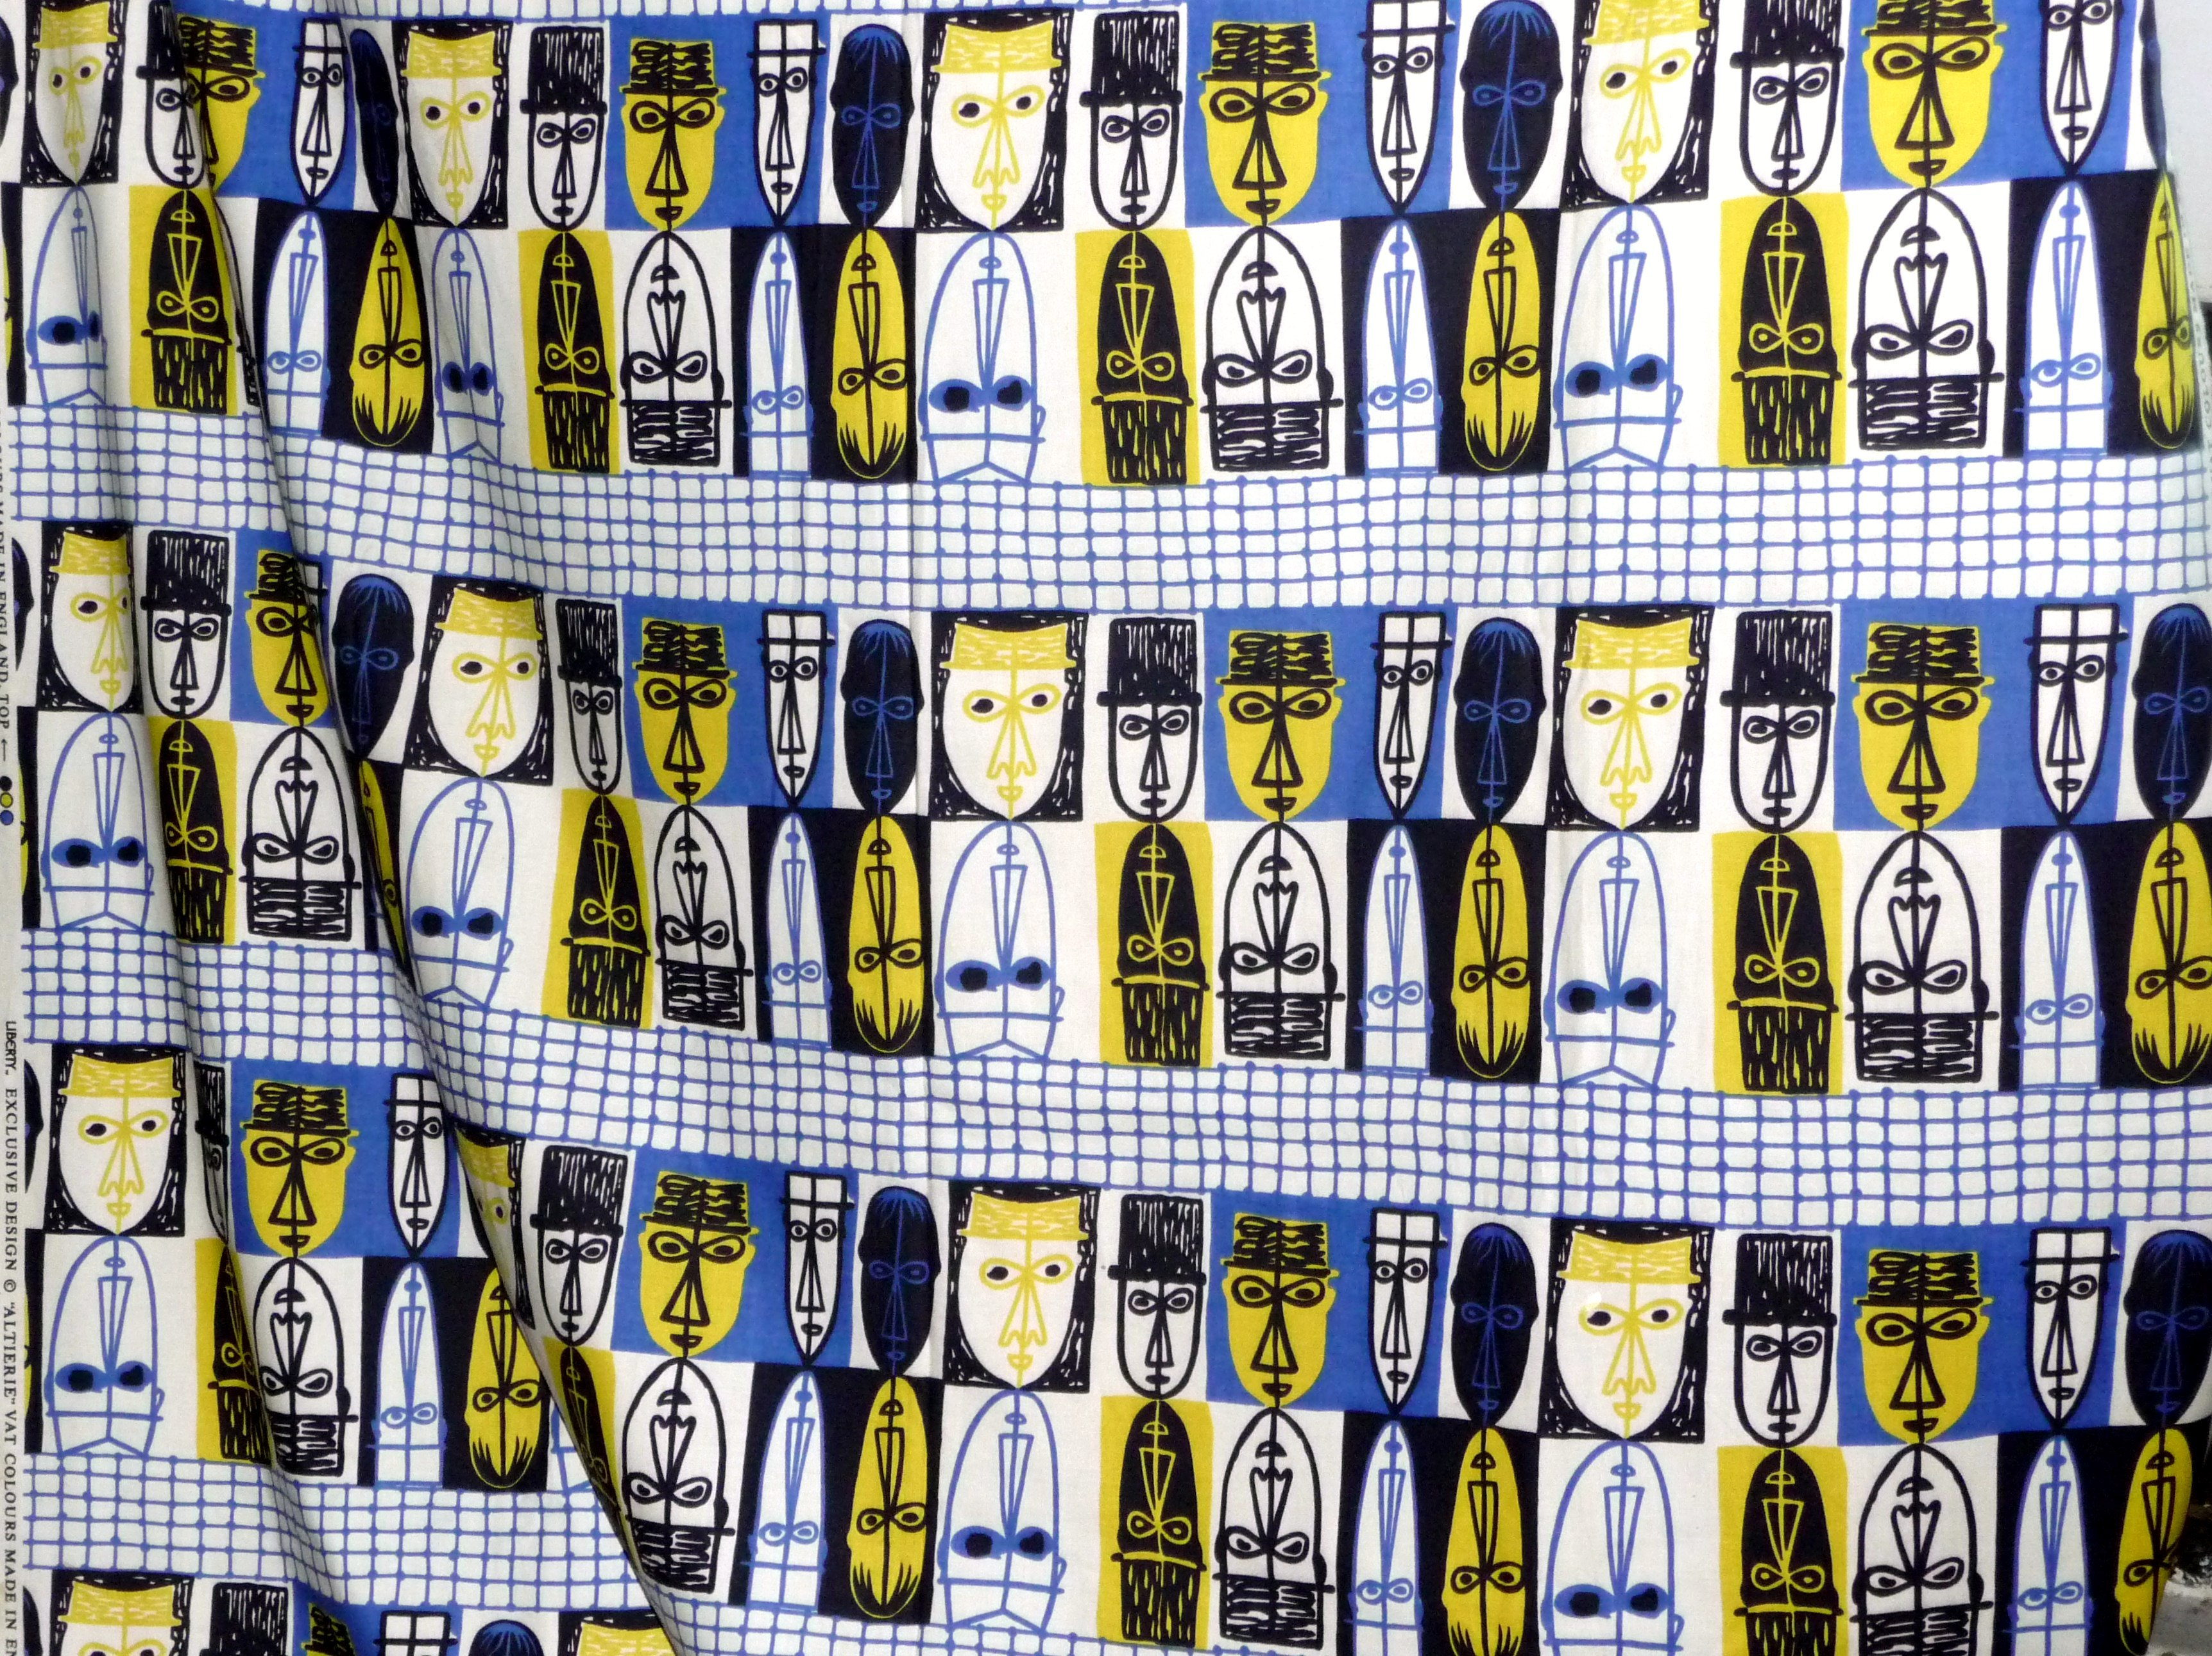 BRITTANY design fabric by John Piper, 1969